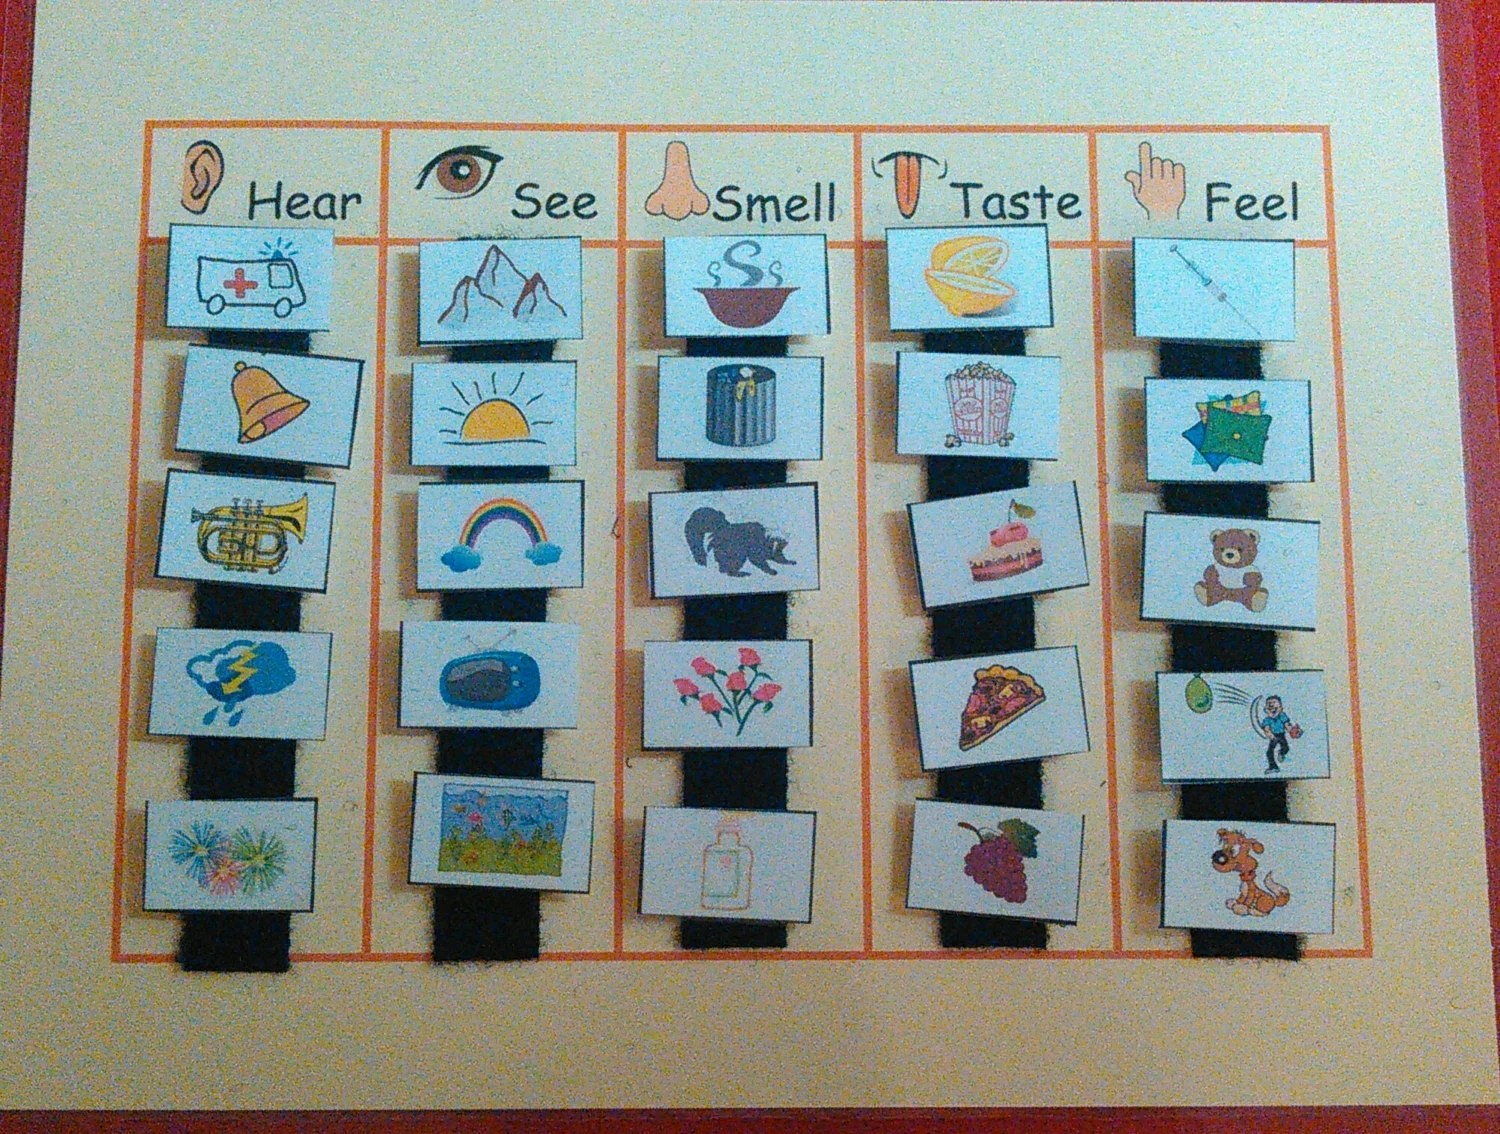 5 Senses Grouping Sorting Velcro Match Quiet Book Page